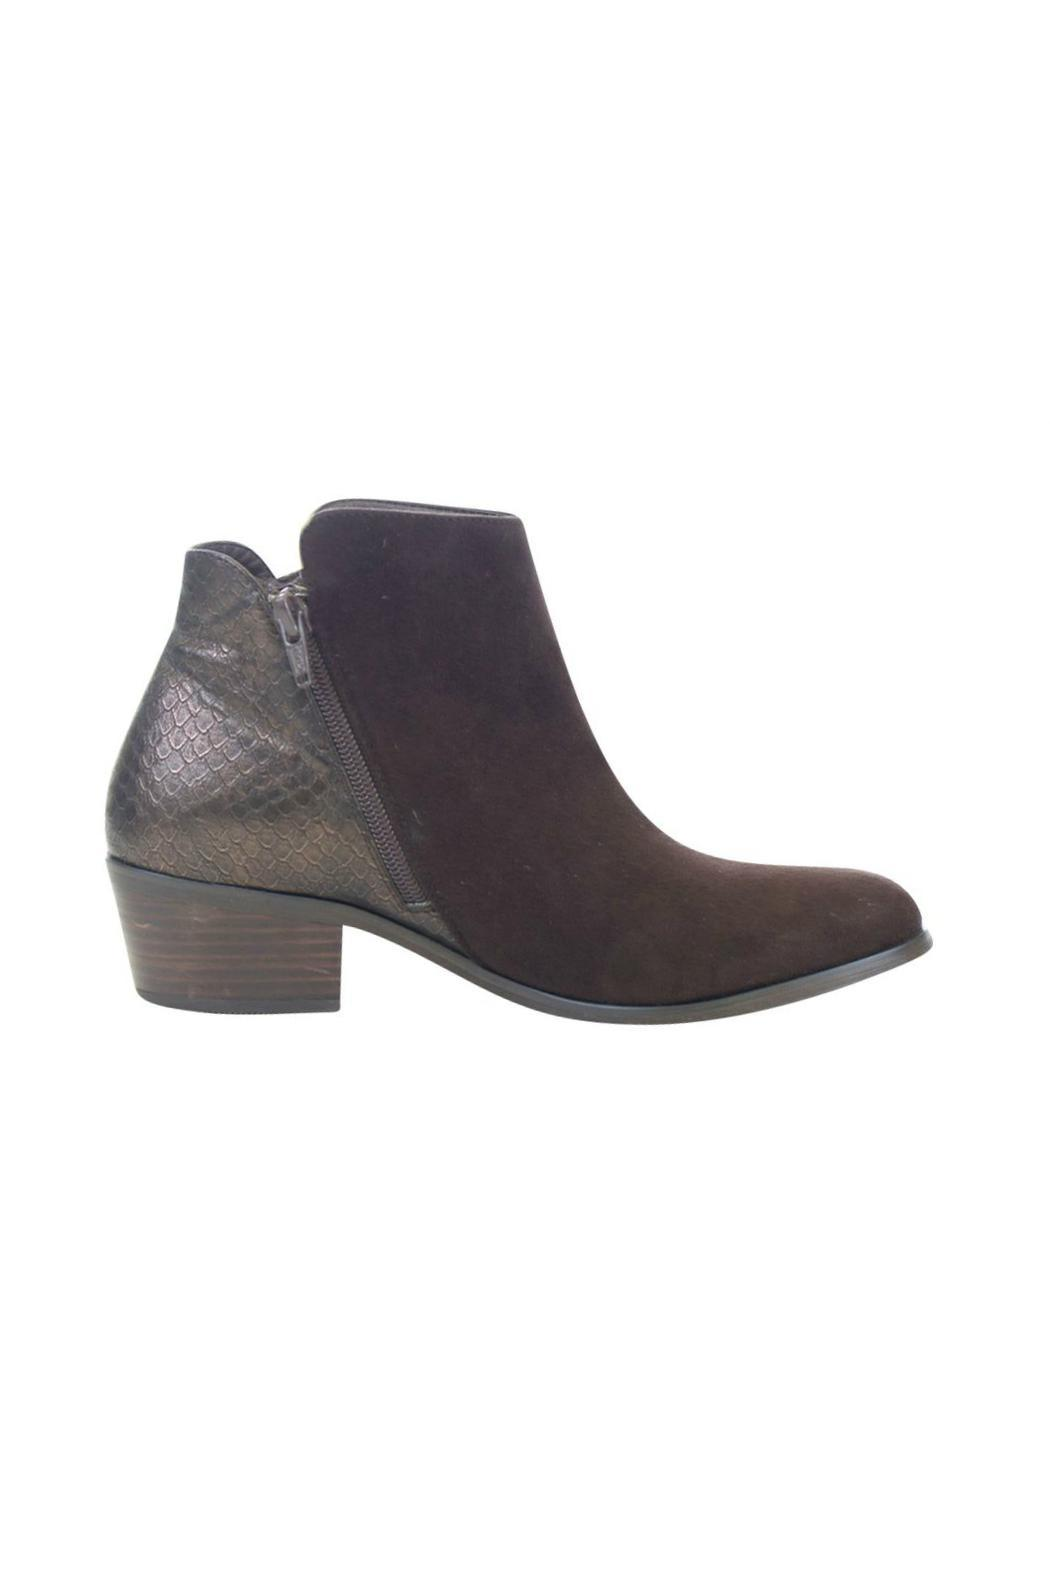 gc shoes Brown Zip Bootie - Back Cropped Image